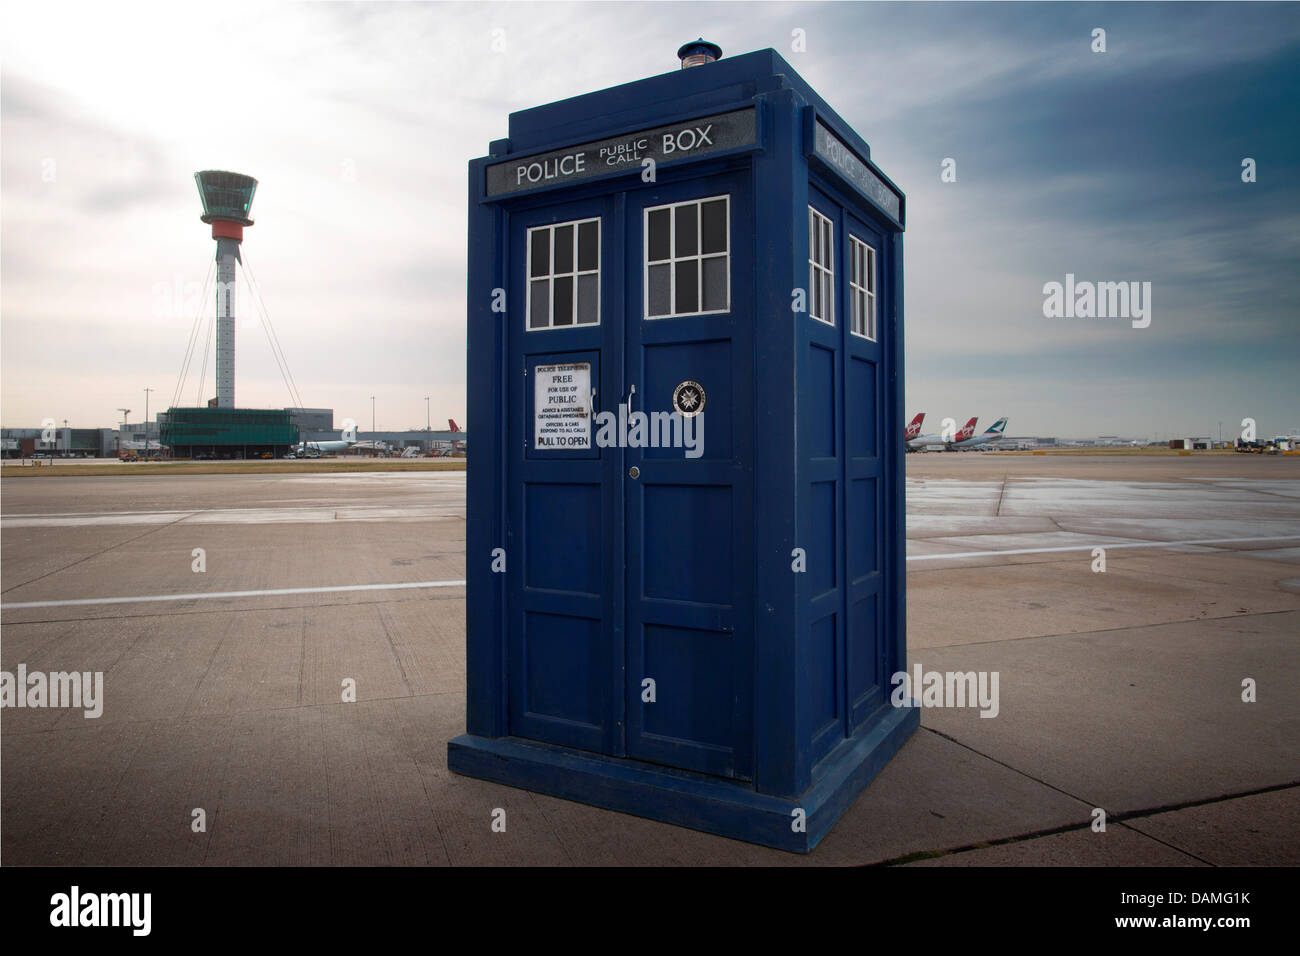 London, UK. 16th July 2013. HANDOUT IMAGE: PIctures courtesy of Heathrow airport.The Tardis photobooth from the - Stock Image